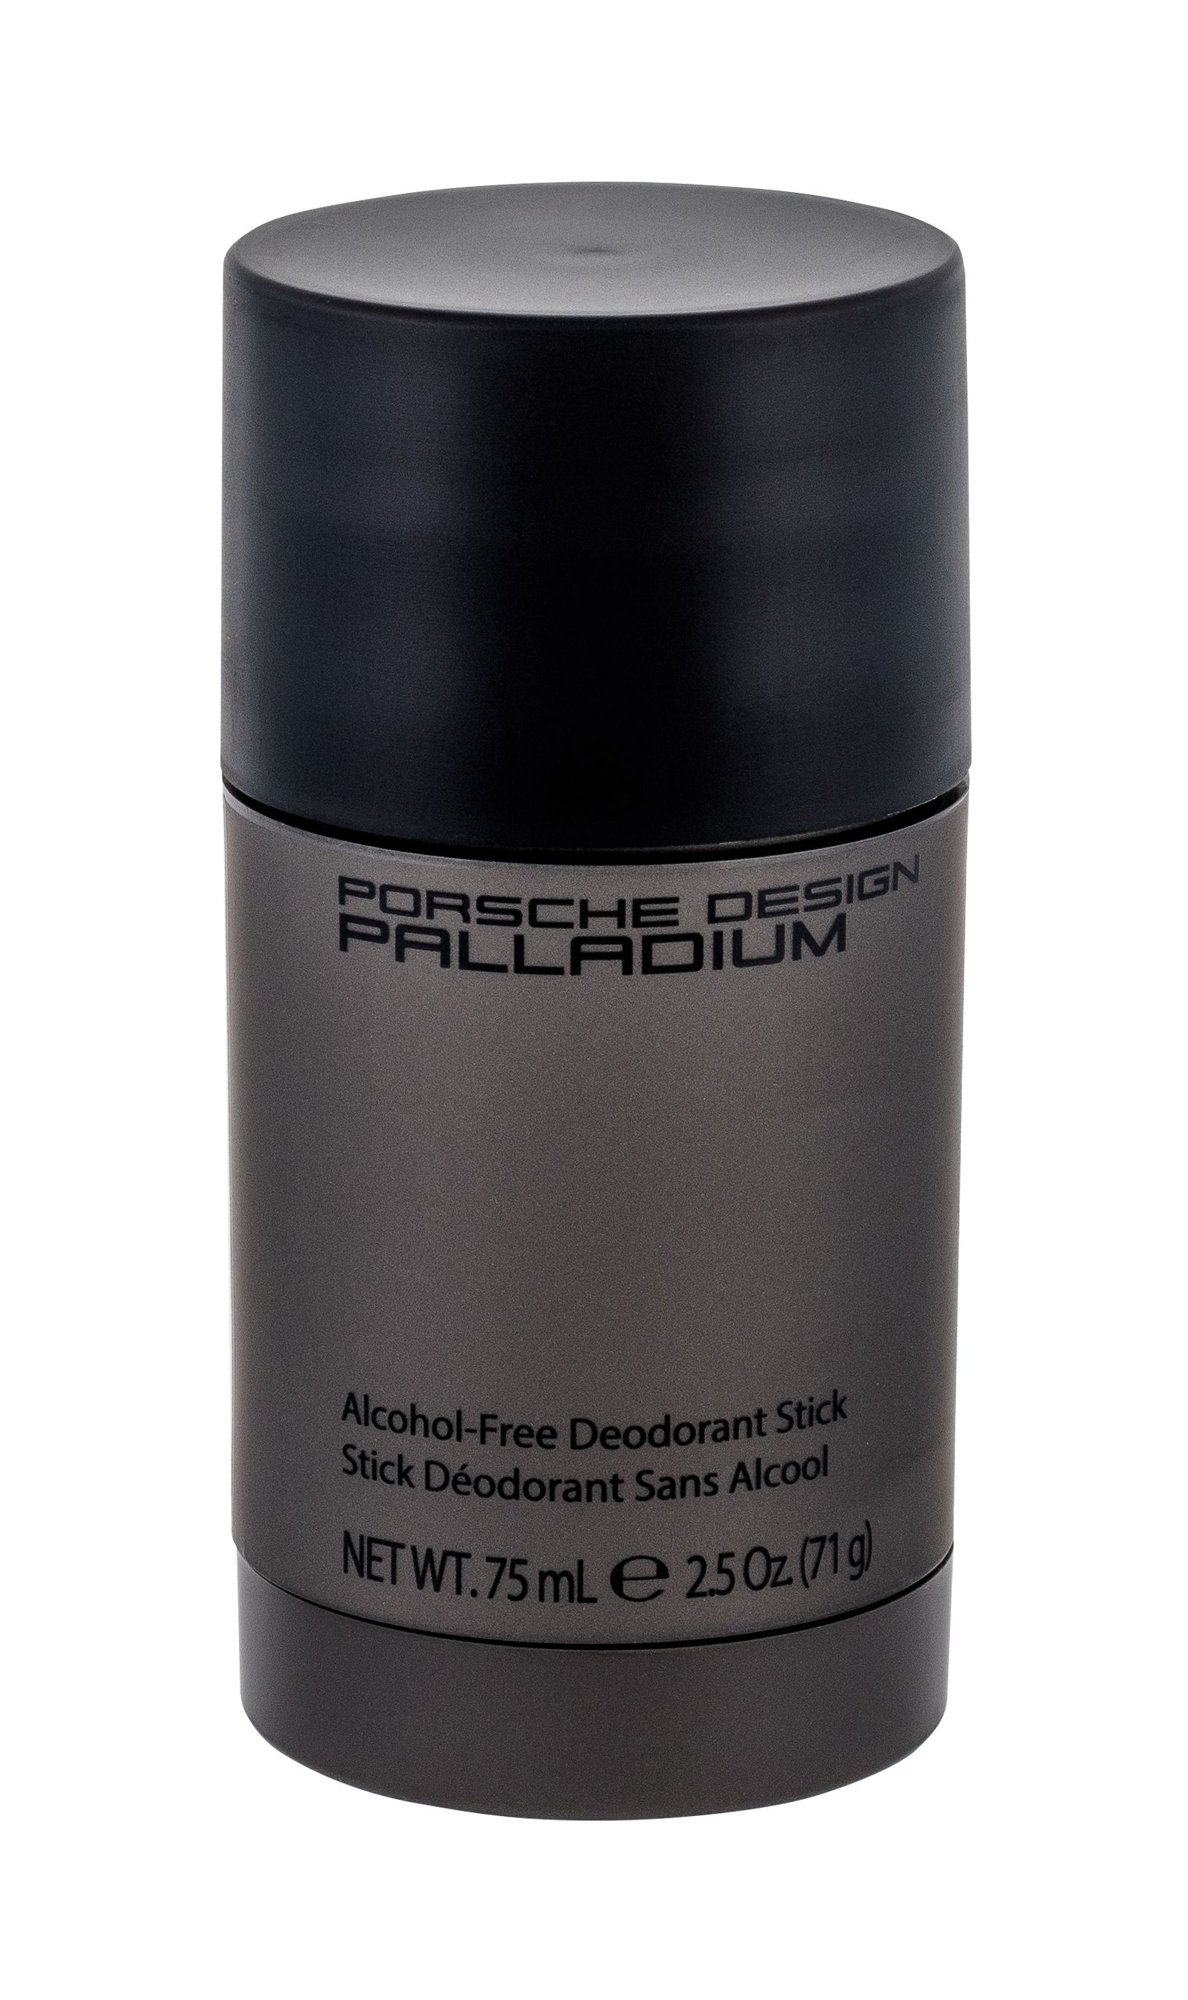 Porsche Design Palladium Deodorant 75ml